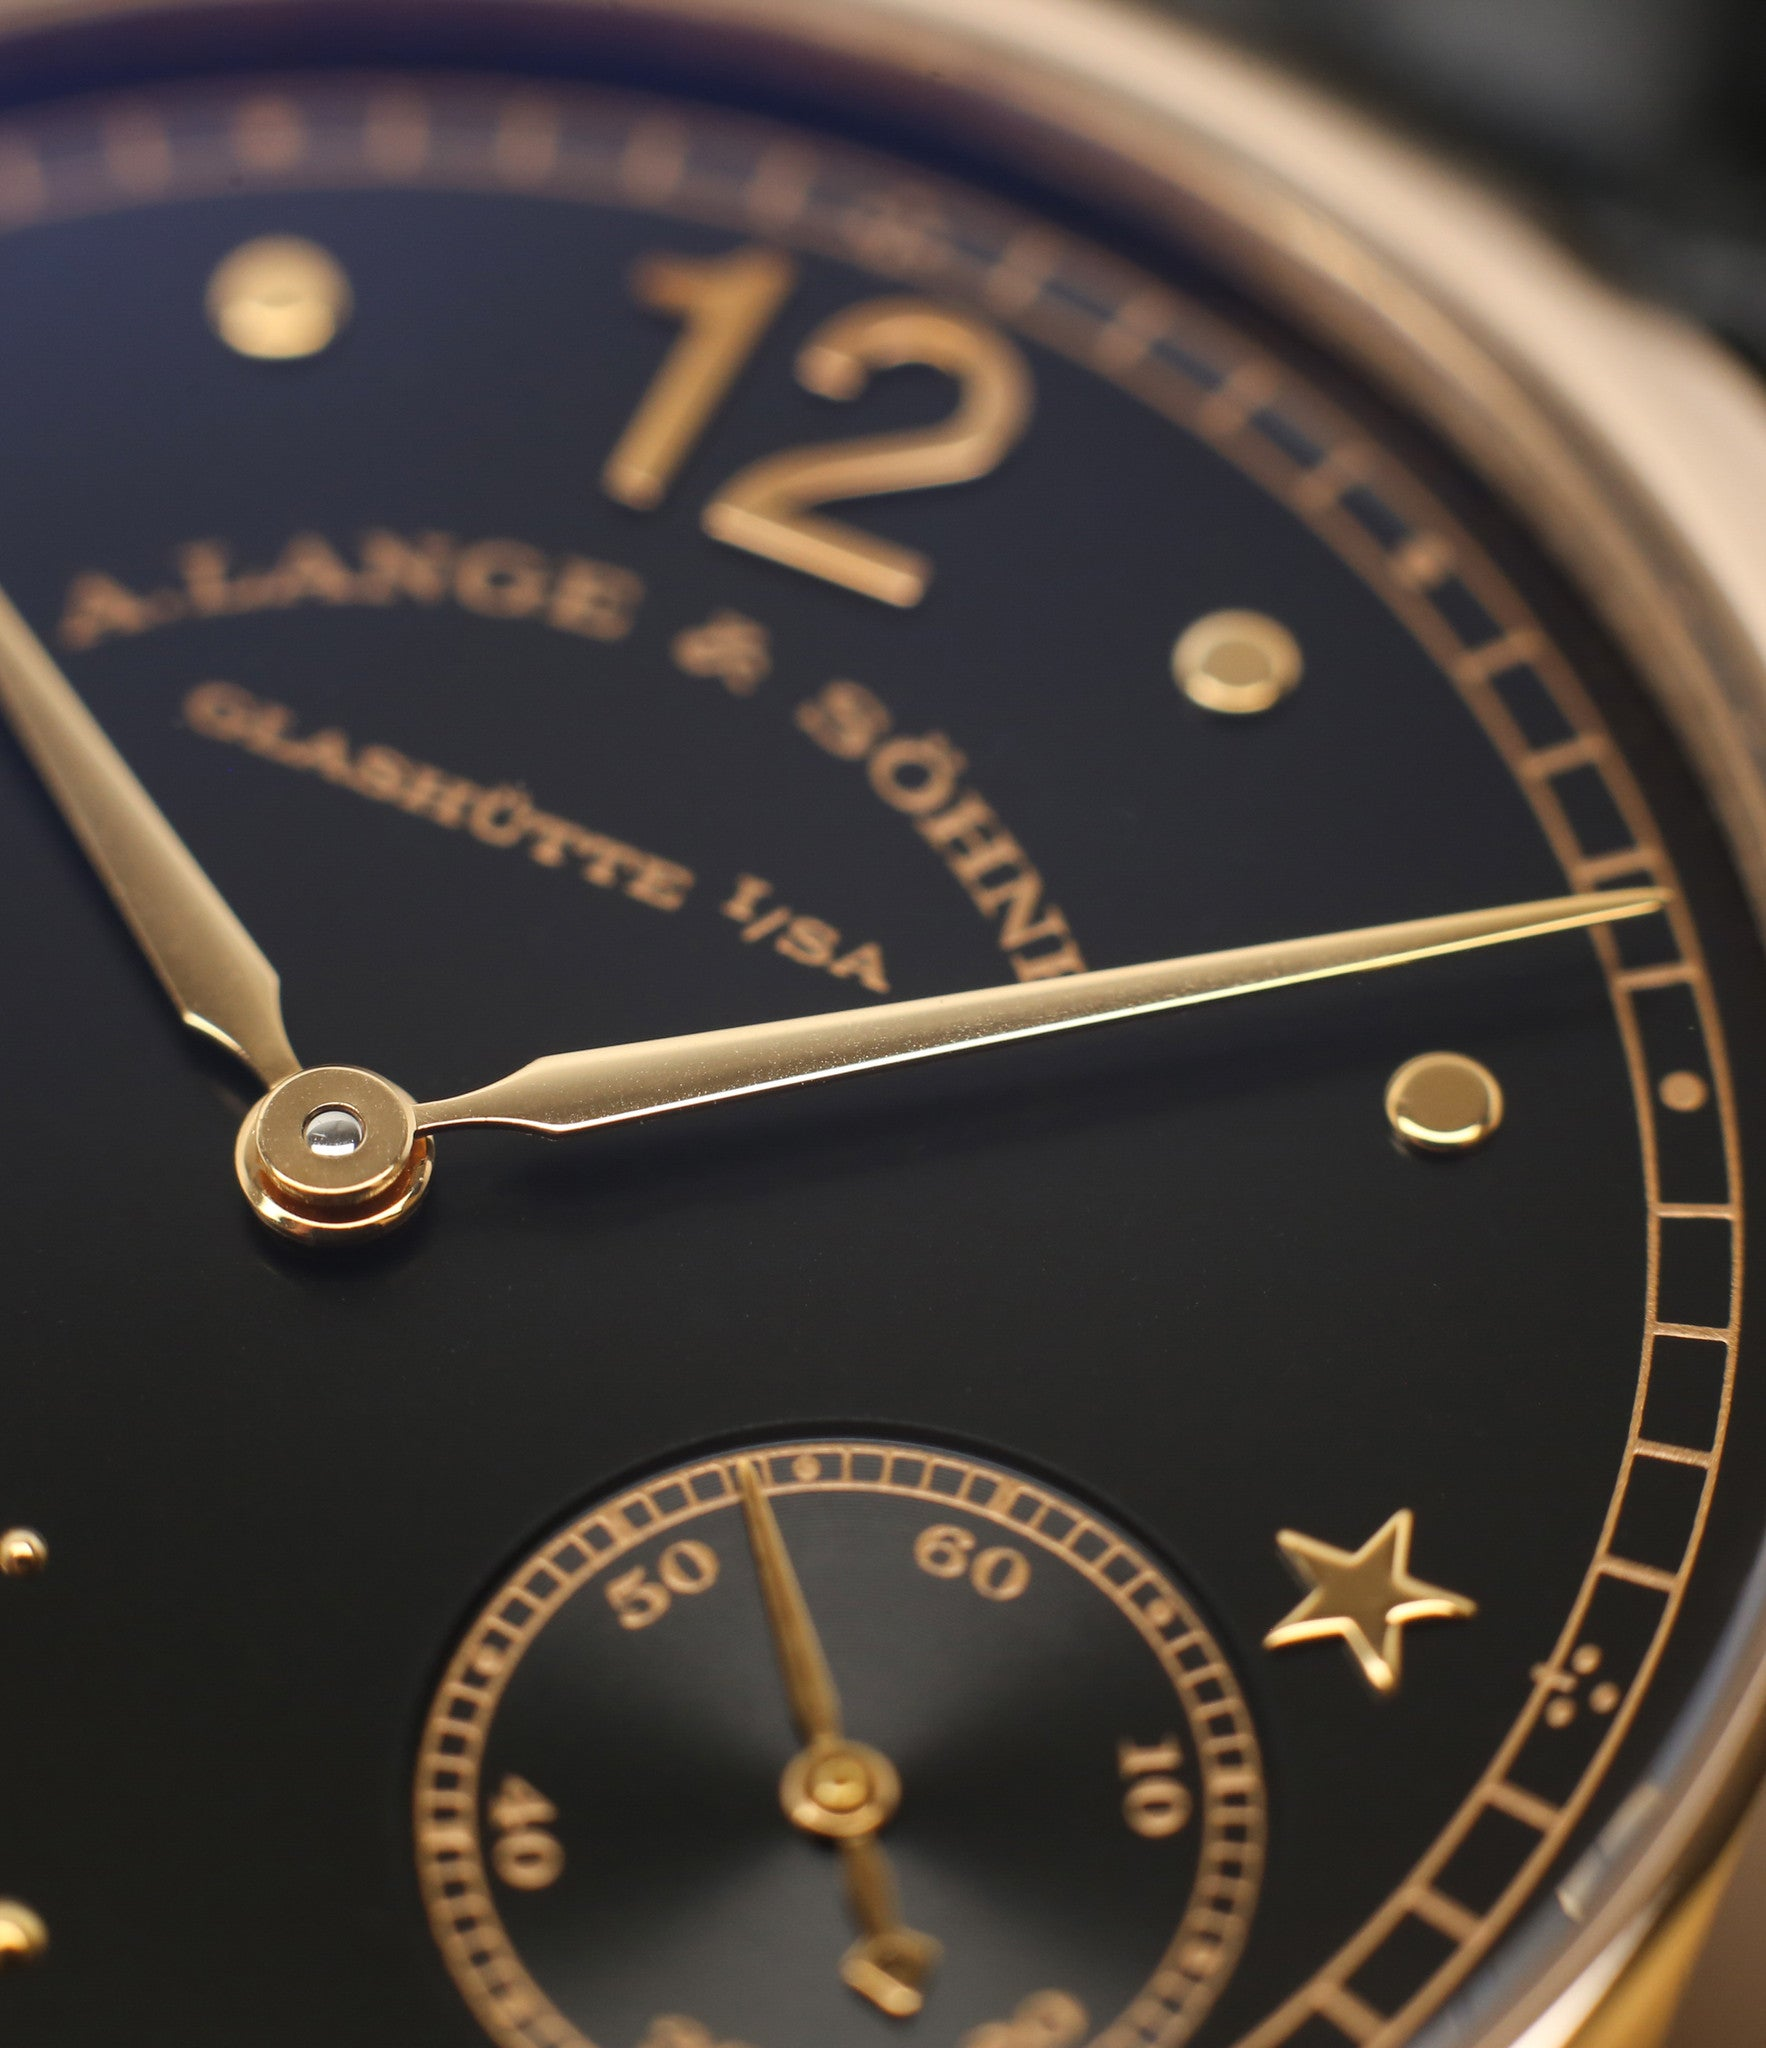 rose gold feuille hands buy rare A. Lange & Söhne 1815 Moonphase Hommage a Emil Lange 1849-1922 rose gold black dial watch at A Collected Man curated platform of rare and vintage watches